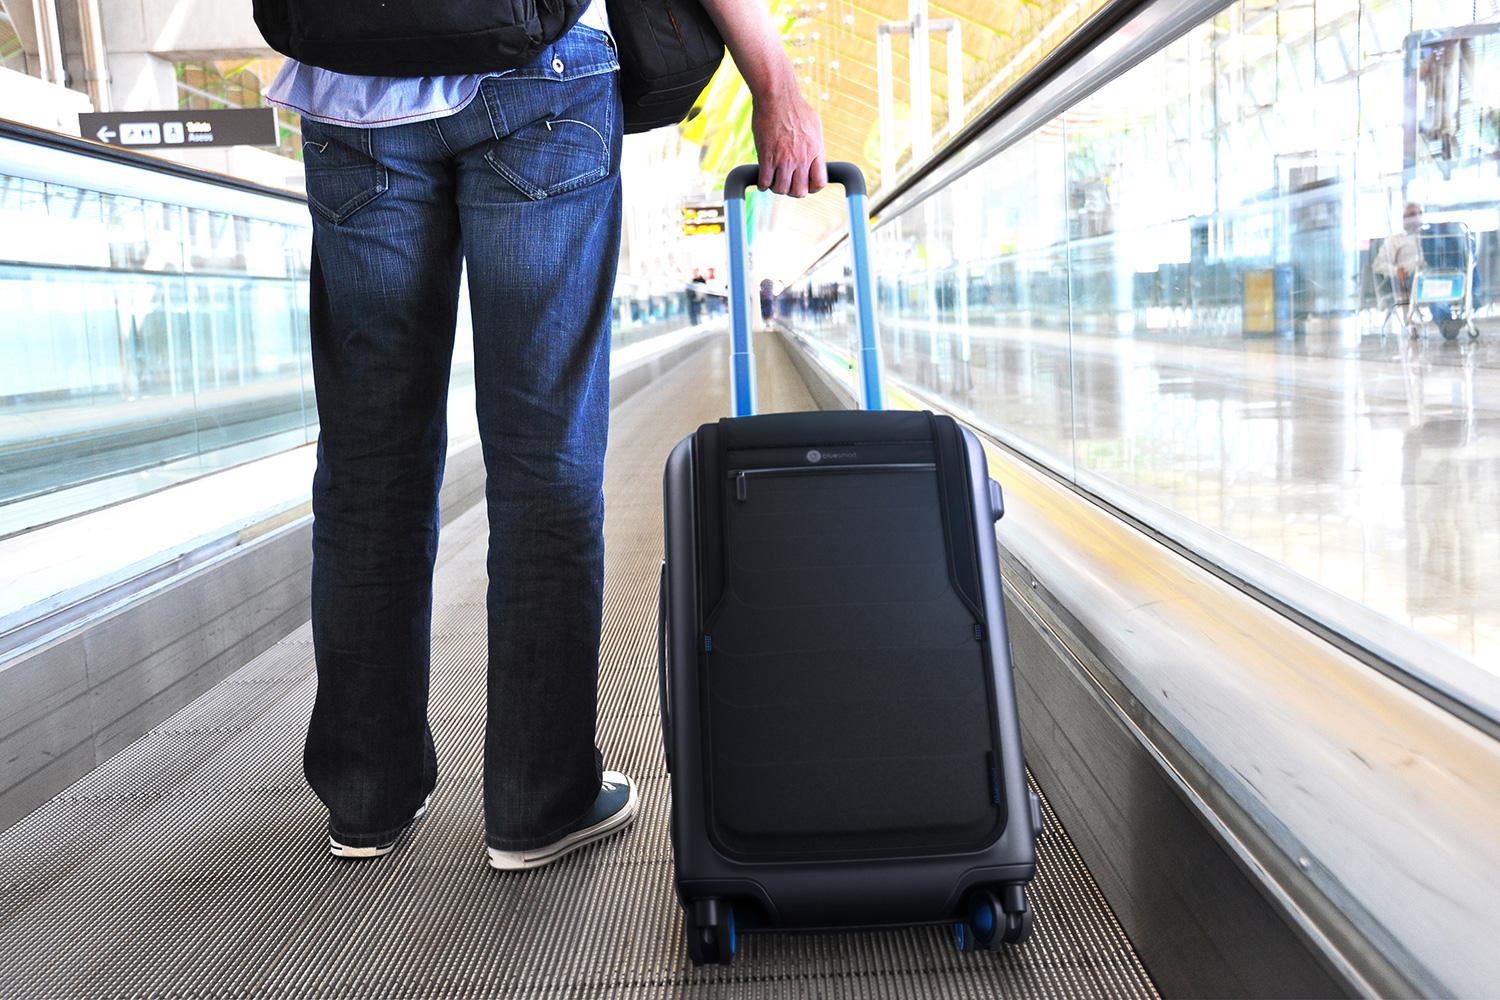 Airline Smart Luggage Ban Will Be A Real Headache For